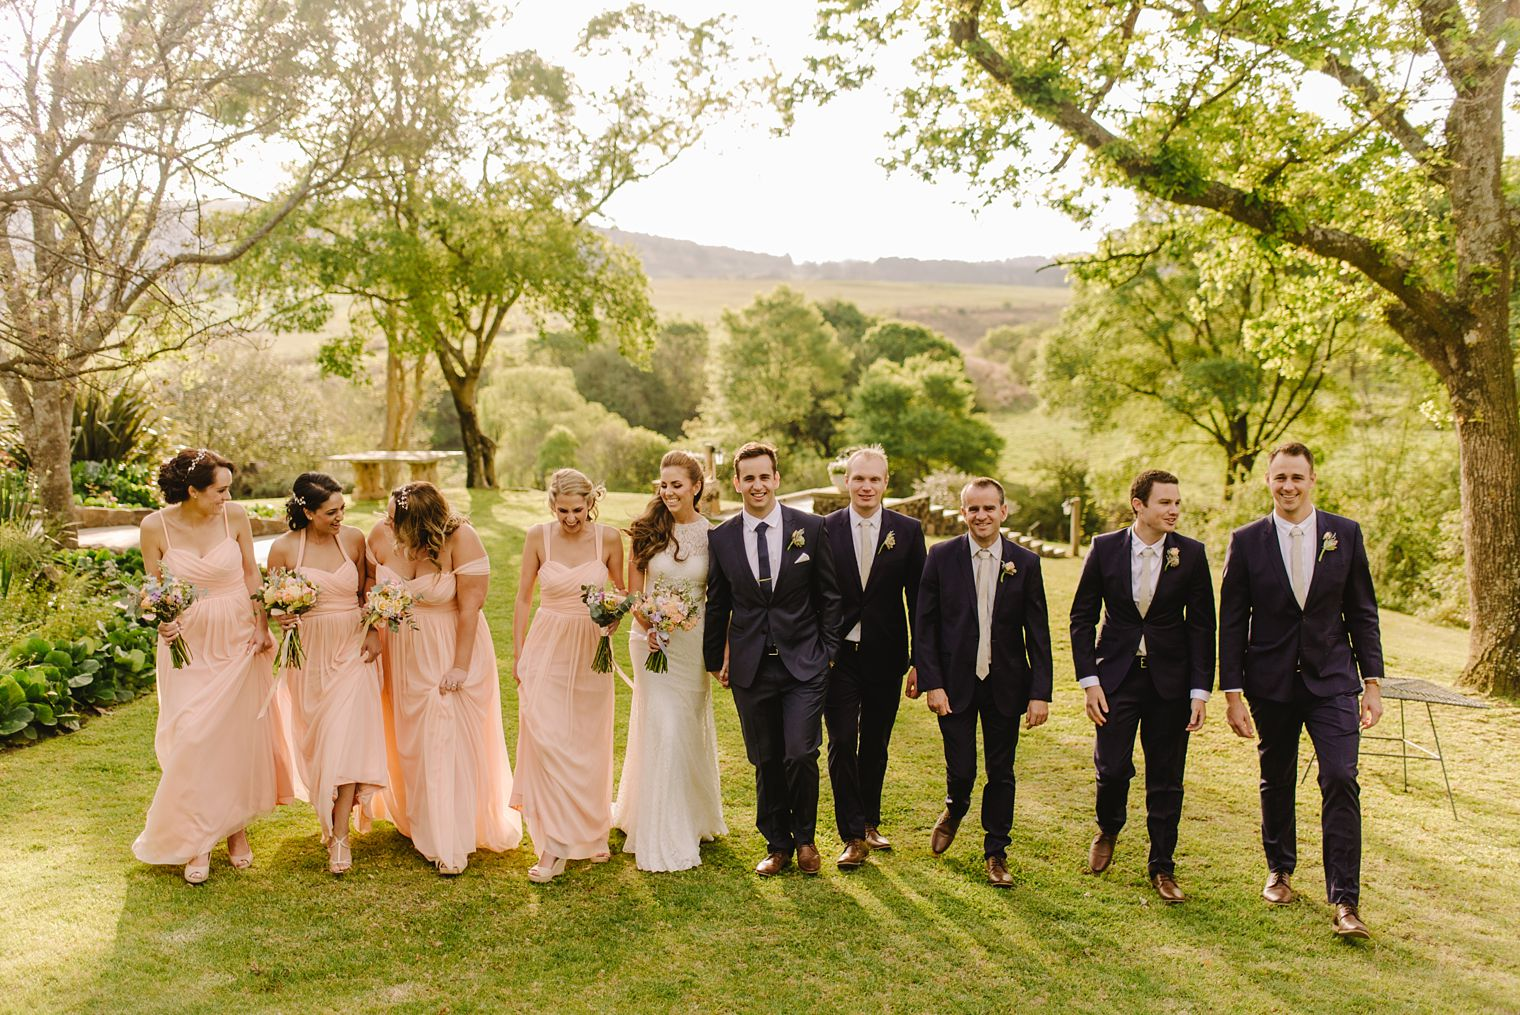 kzn wedding party photo